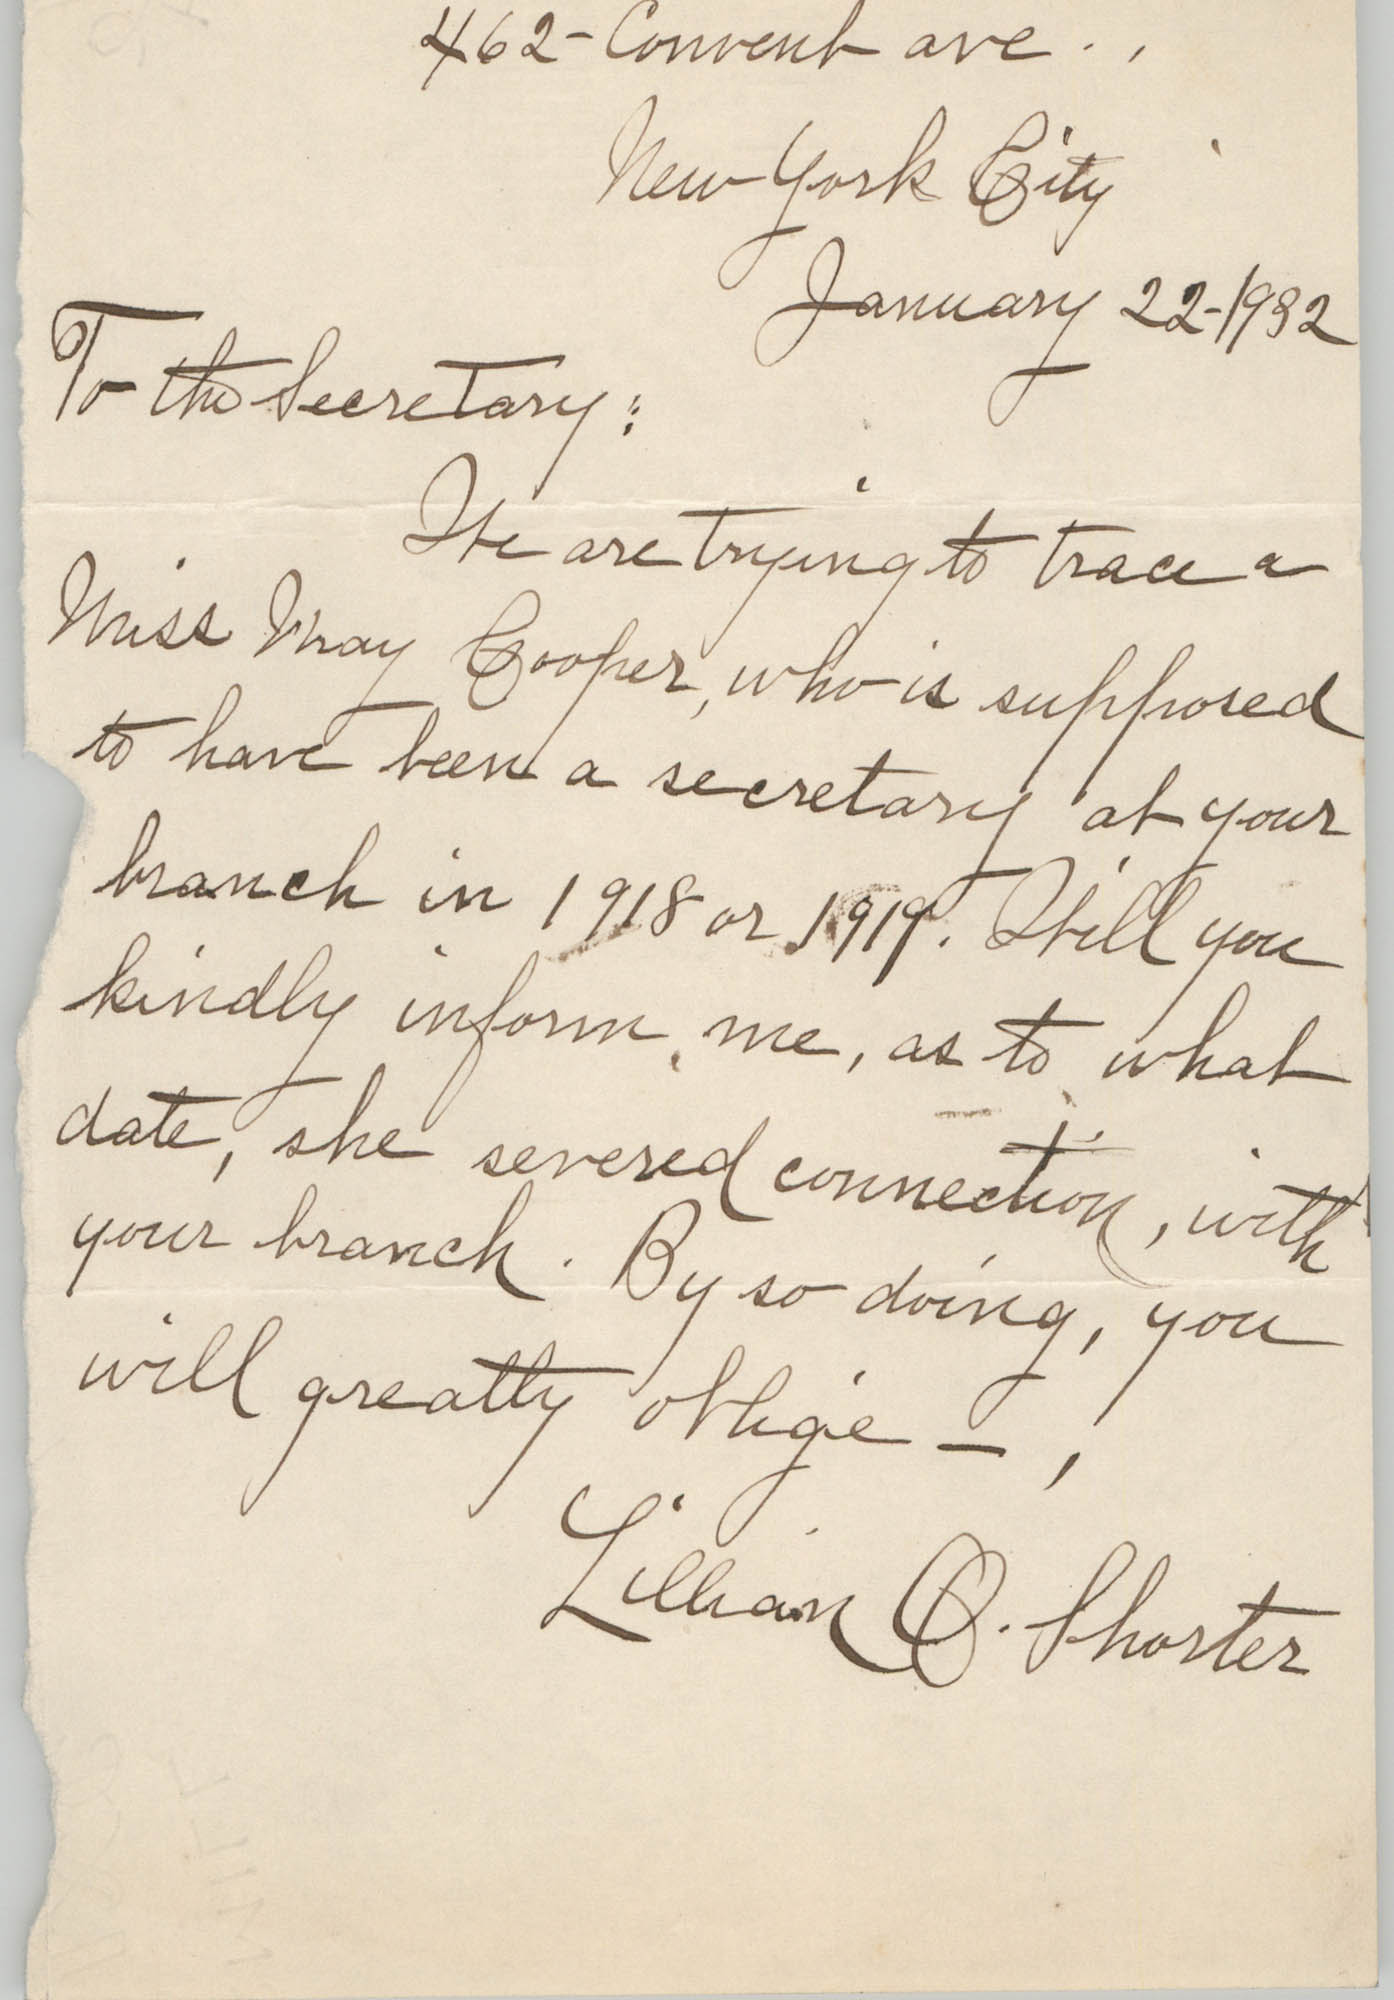 Letter from Lillian O. Shorter, January 22, 1932